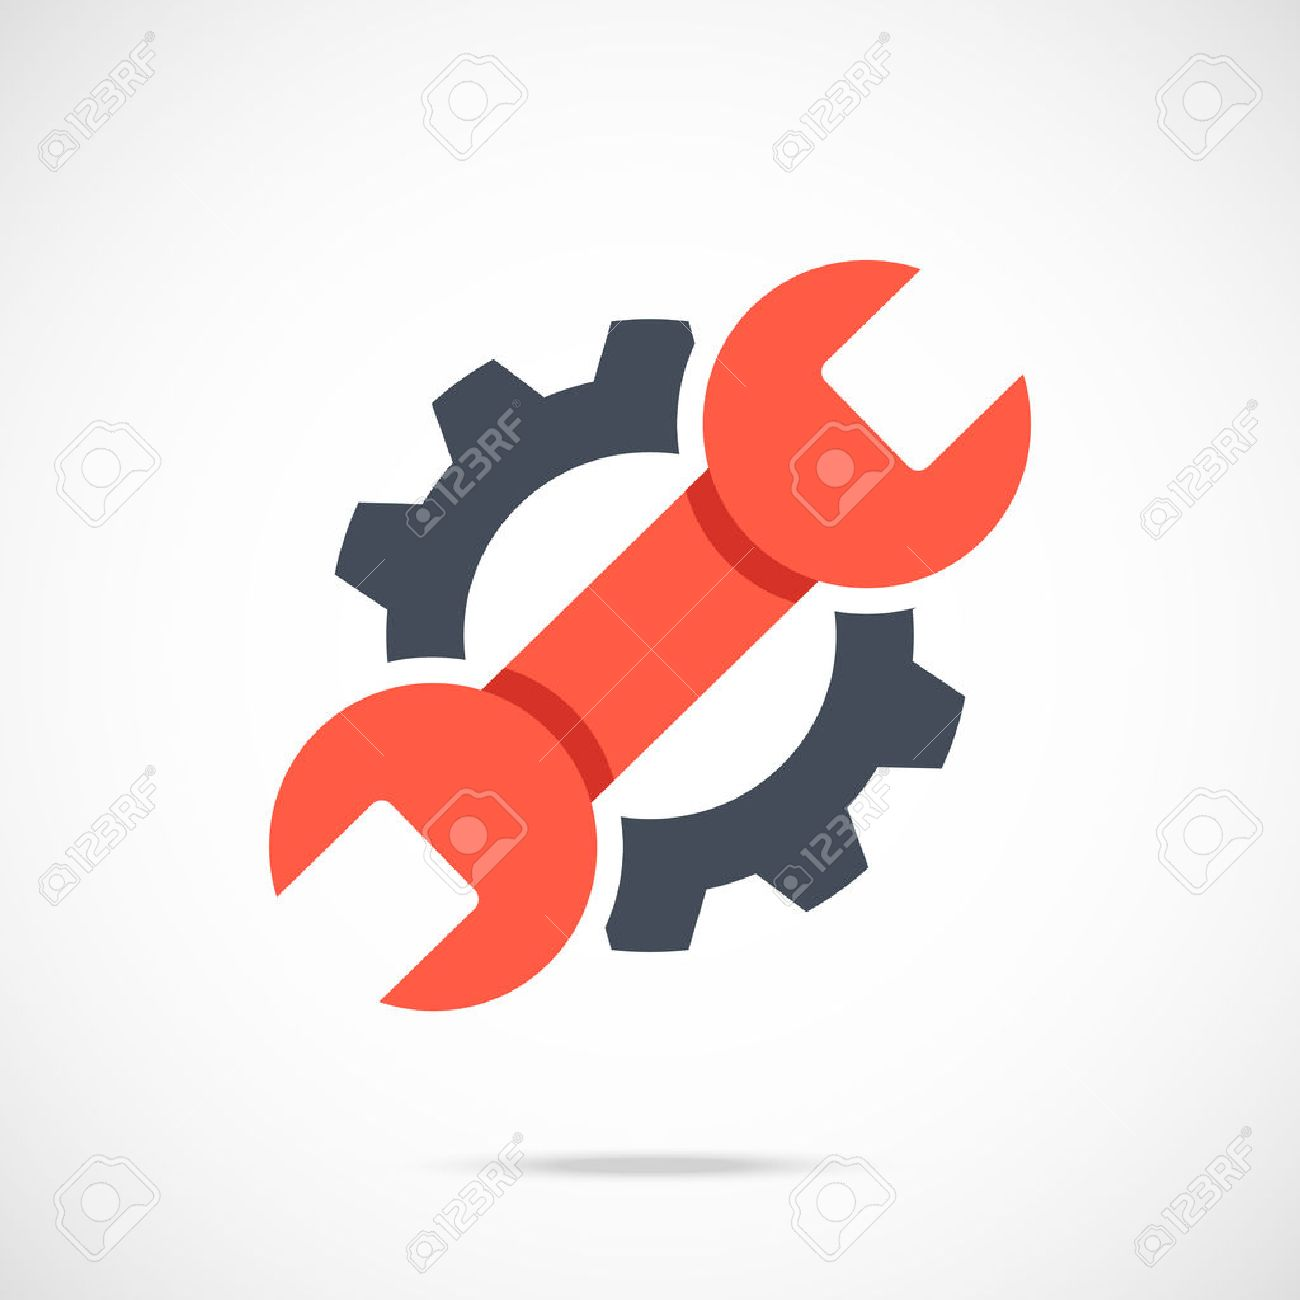 Gear and wrench icon. Red spanner and black cog. Creative graphic design logo element - 55398718